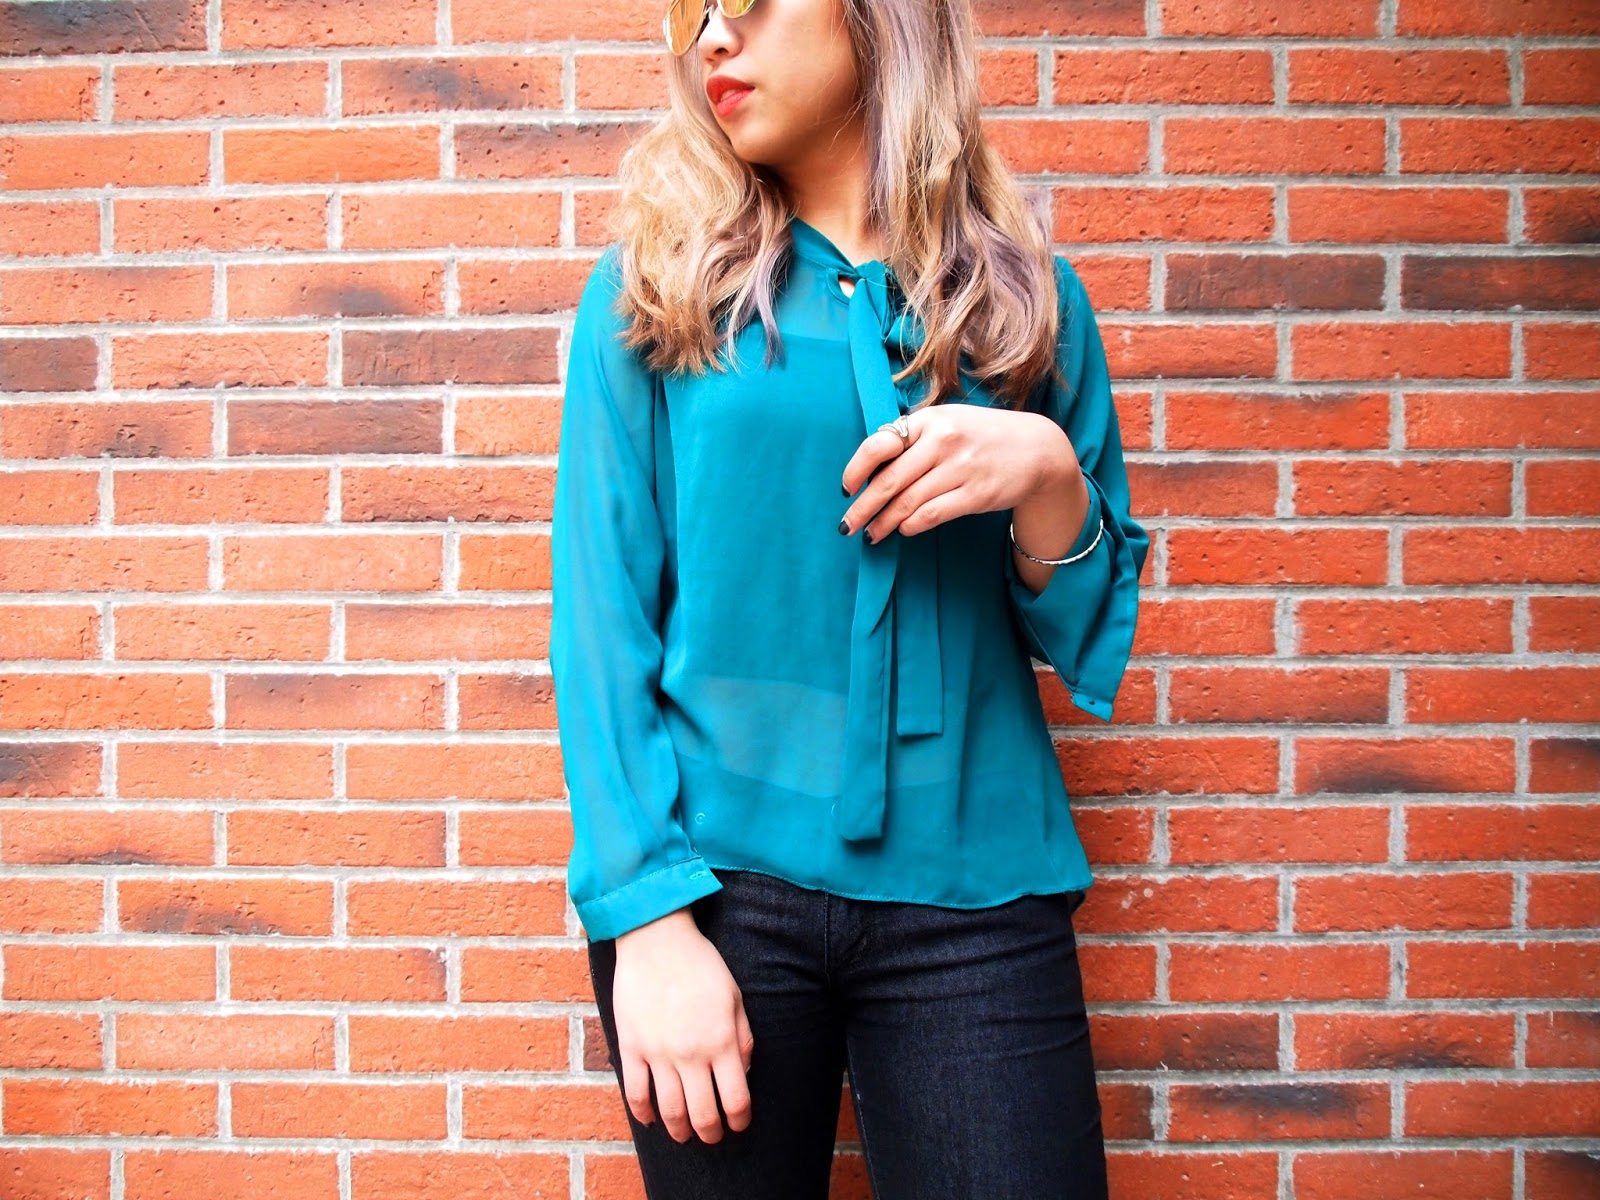 This is a photo of styling sheer blouse with jeans by Sidney Scarlett from www.sidneyscarlett.com